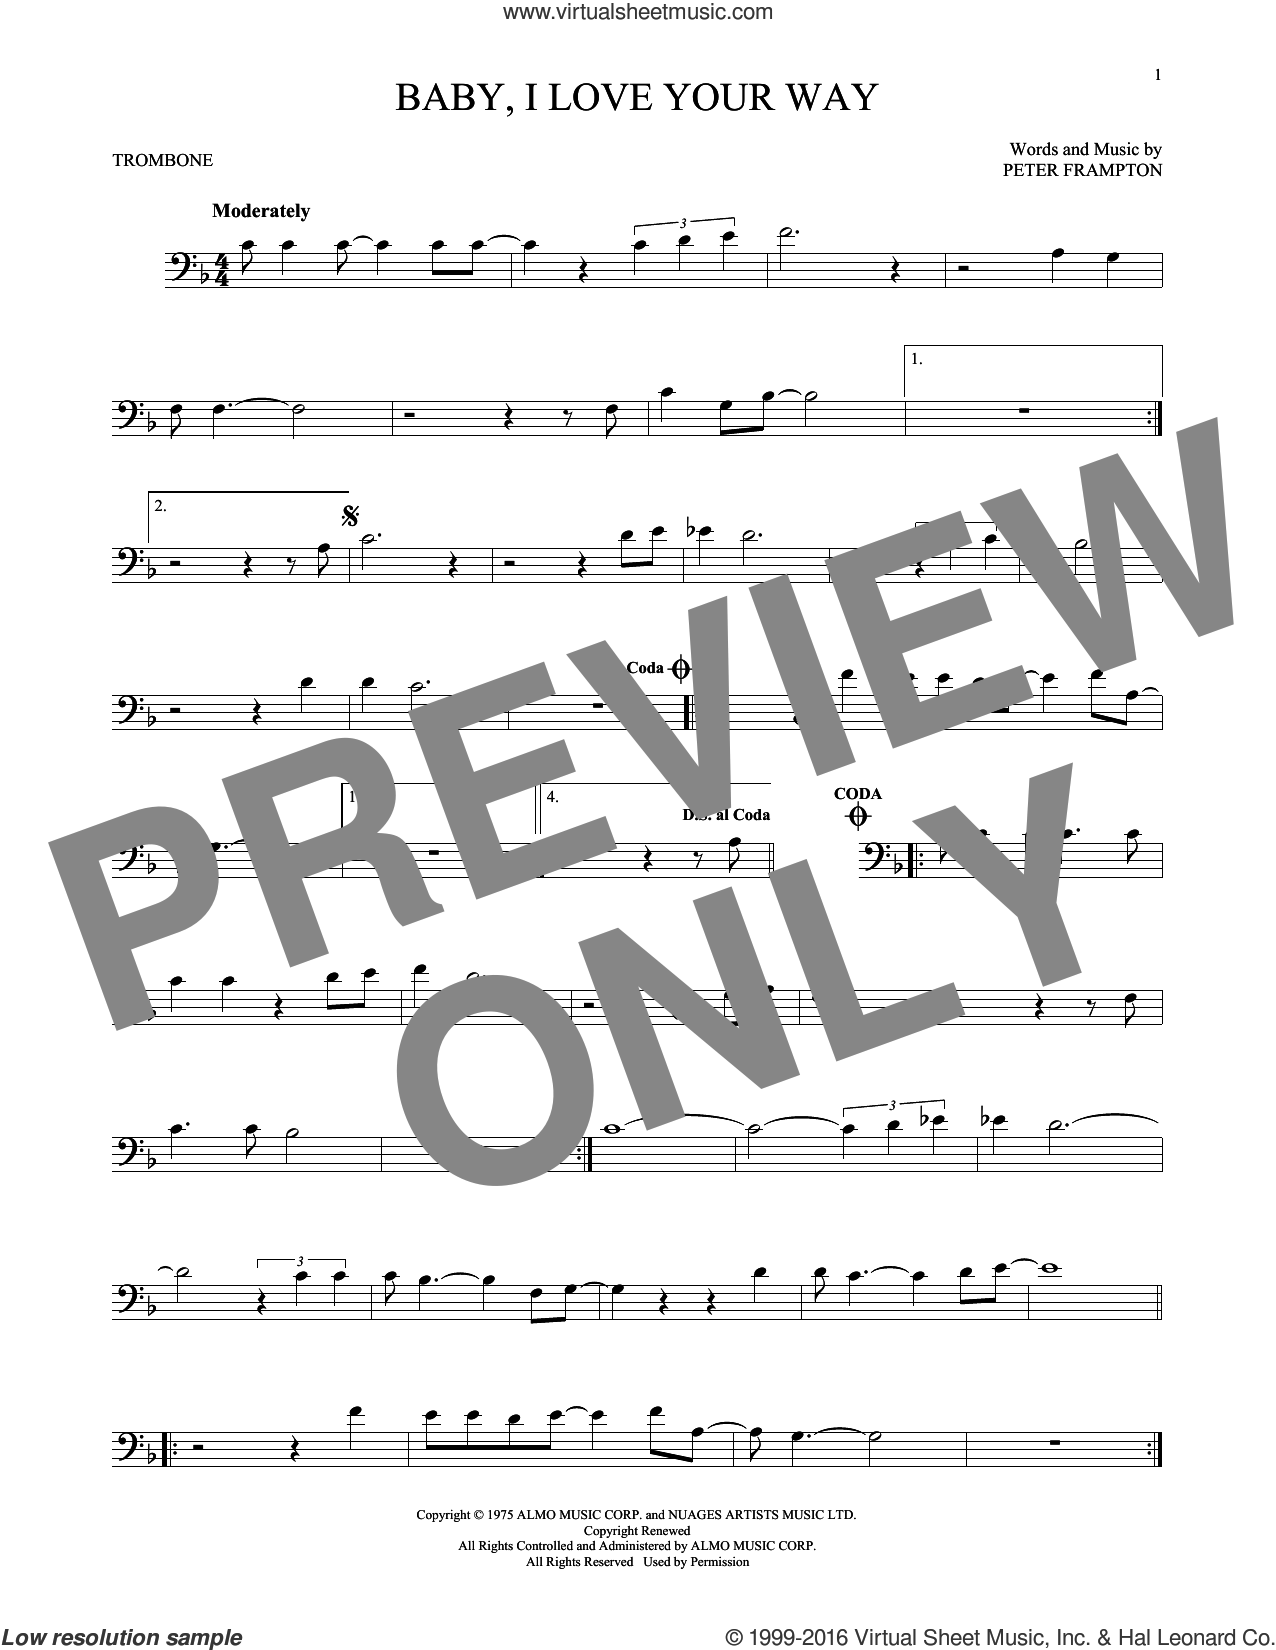 Baby, I Love Your Way sheet music for trombone solo by Peter Frampton, intermediate